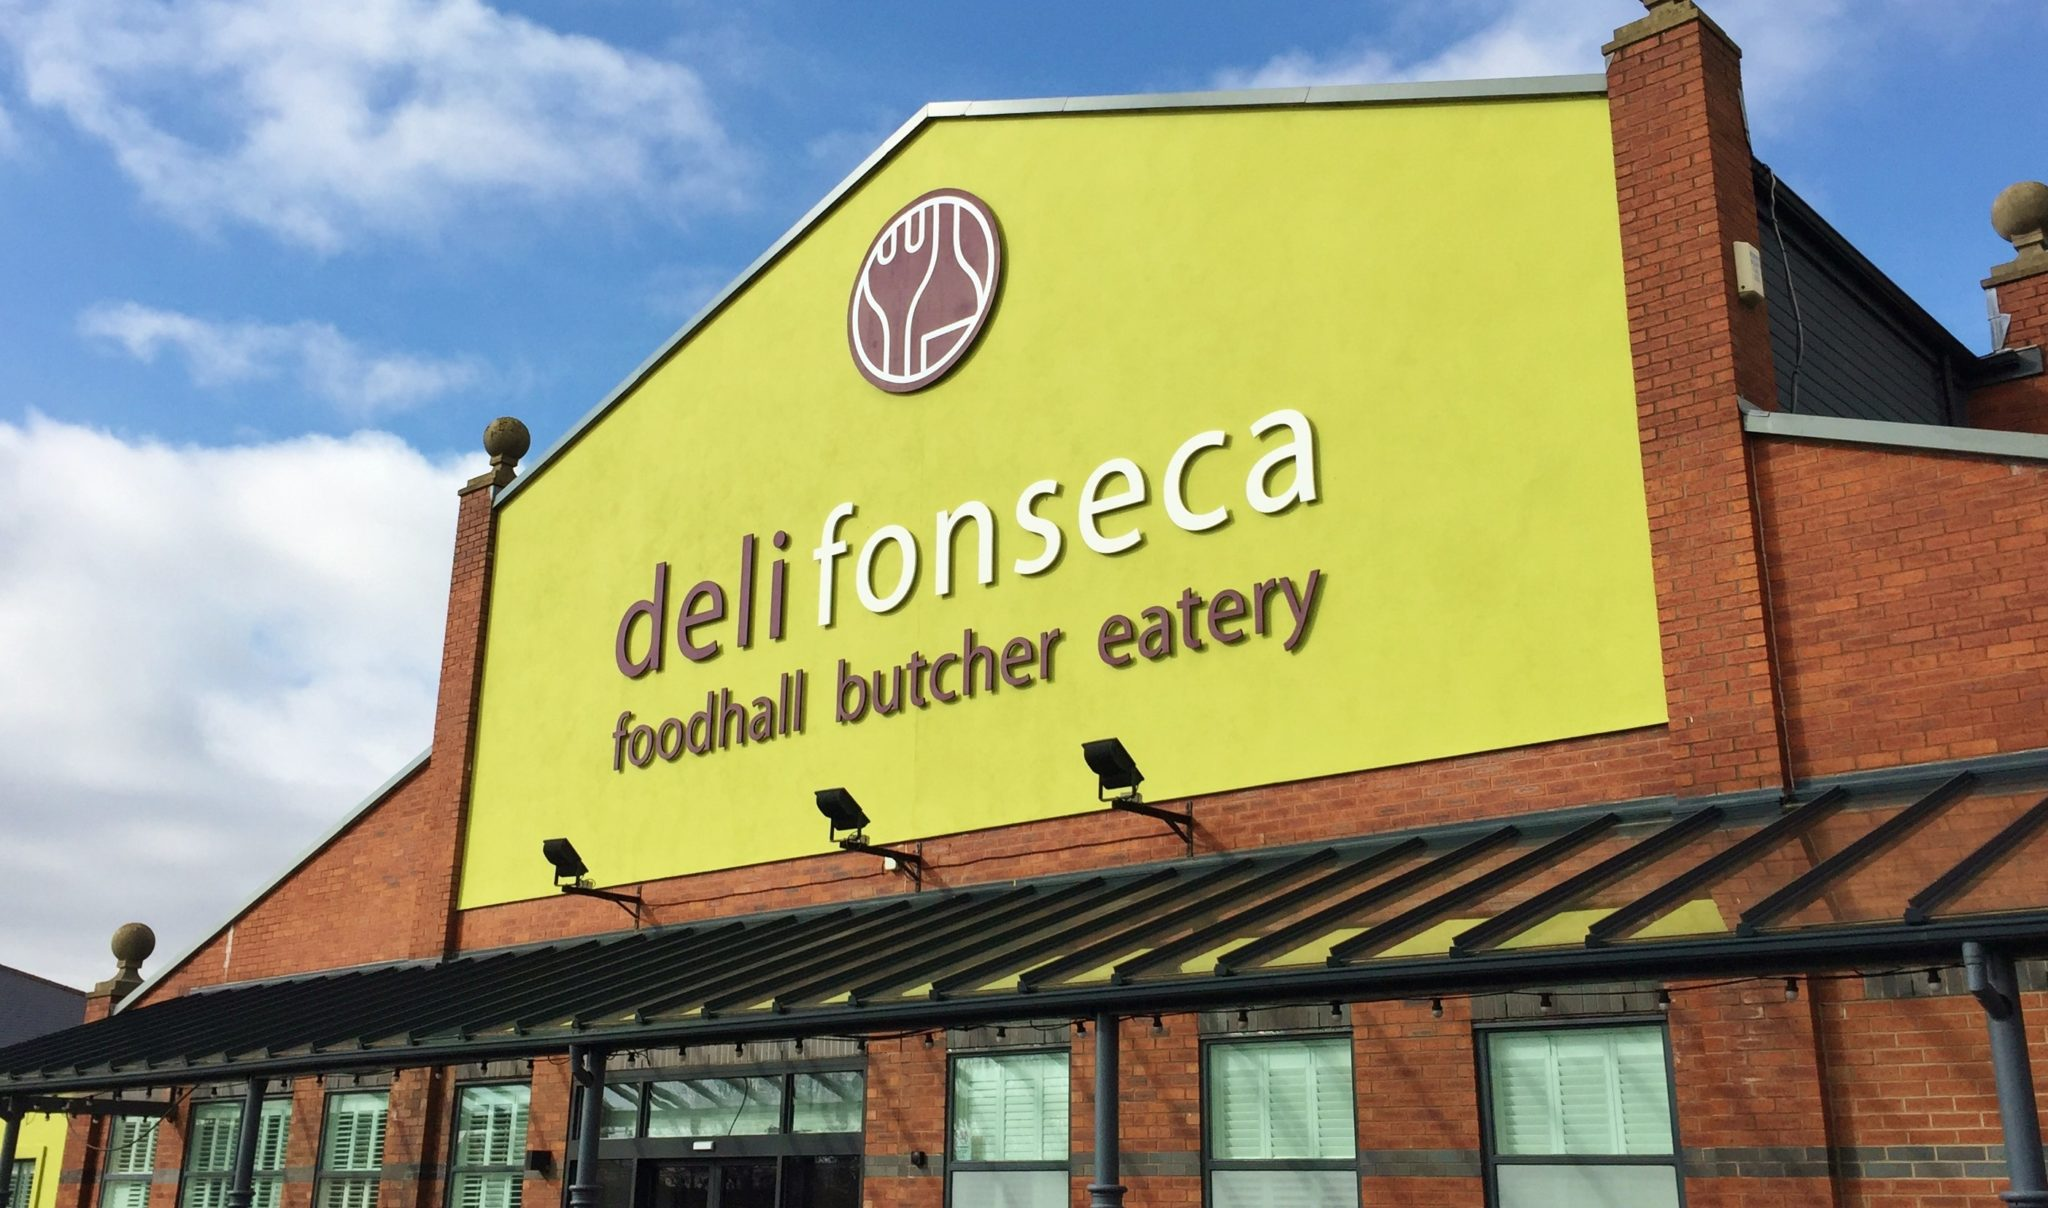 Enjoy Celebrity Radio's Review Delifonseca Liverpool…. Delifonseca is a wonderful deli with an elegantrestaurant in the Baltic Triangle of Liverpool just moments from The Arena […]